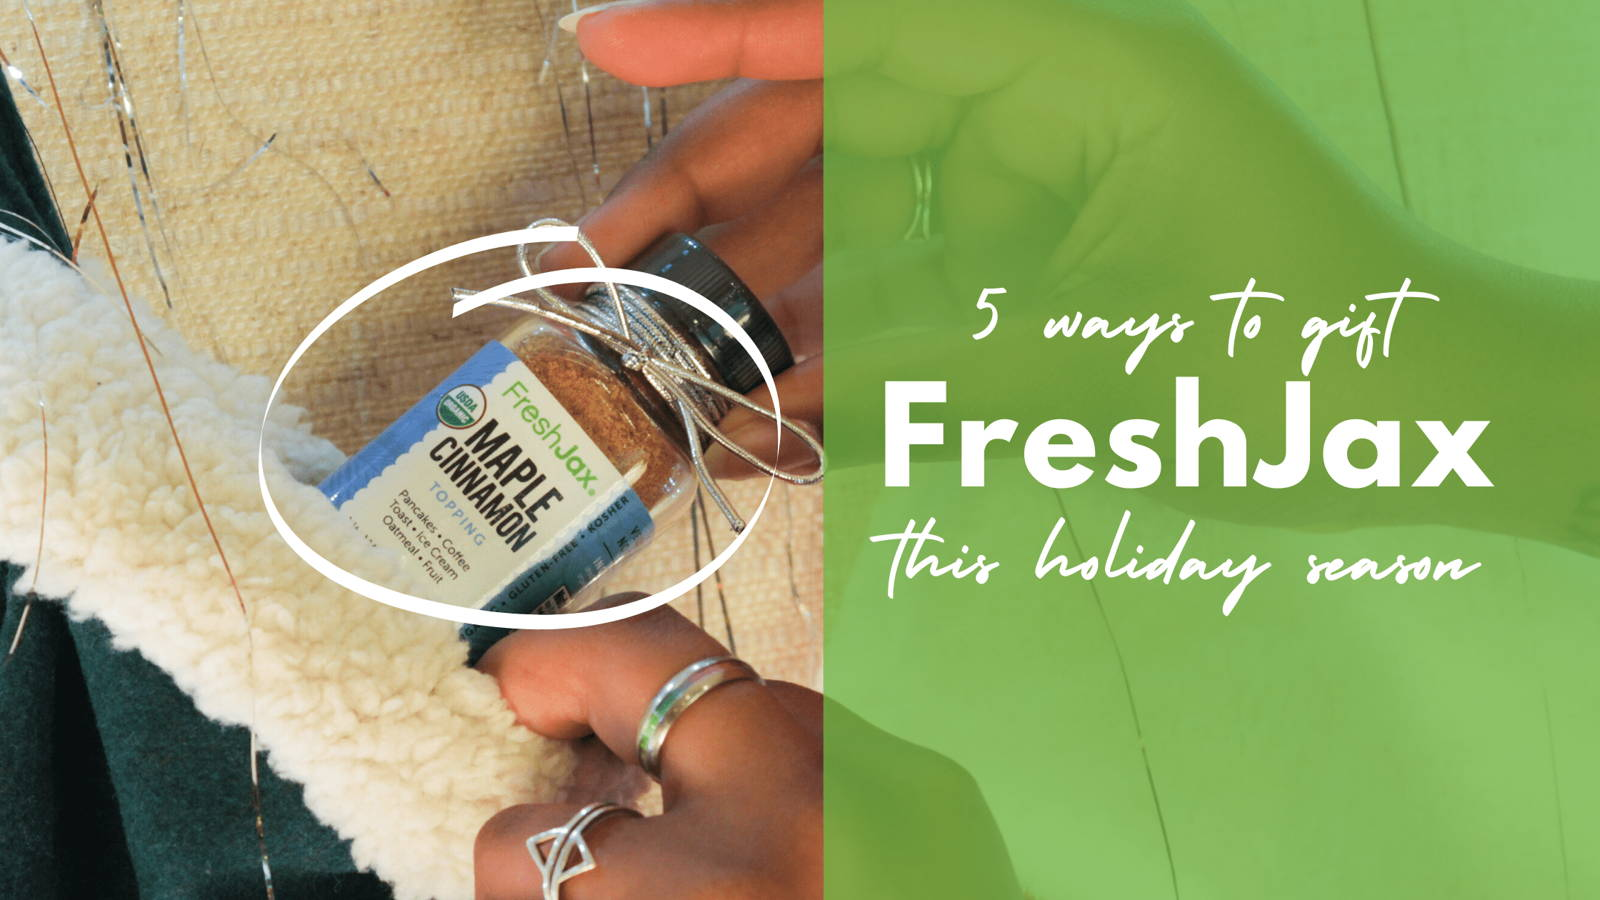 5 ways to gift freshjax organic spices as holidays gifts